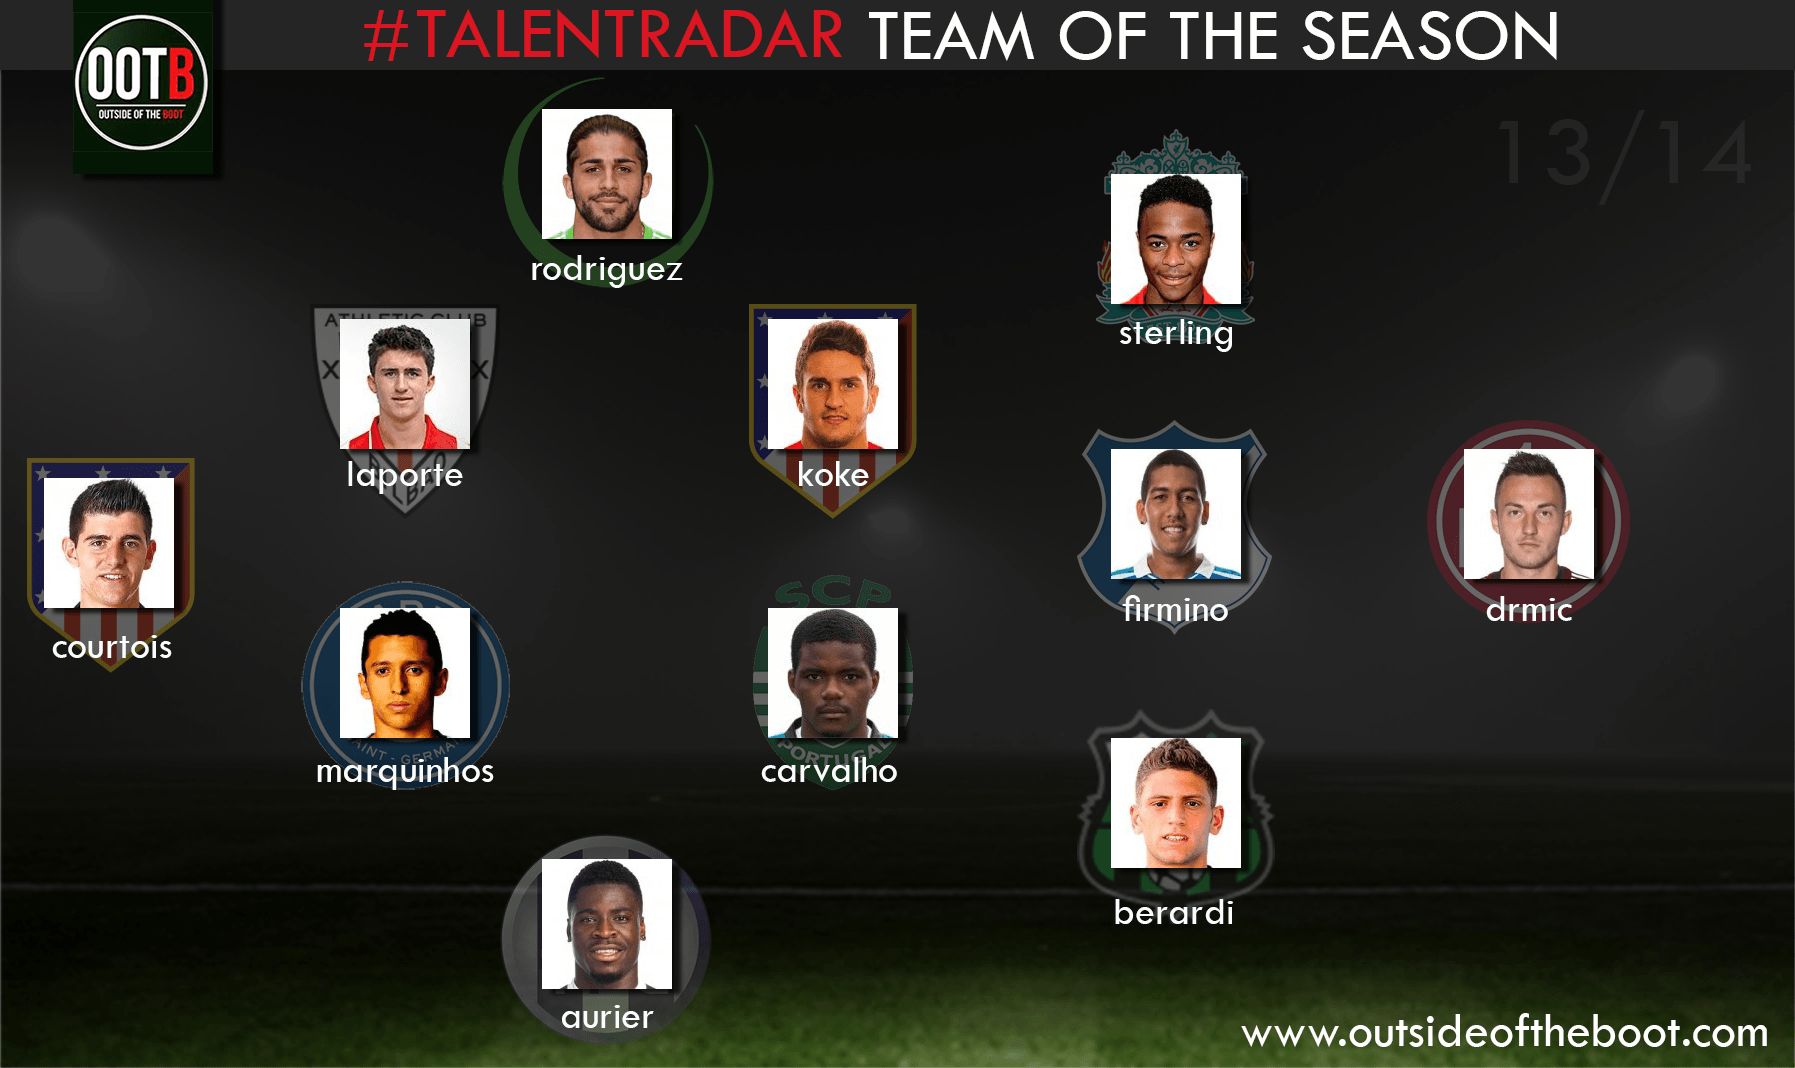 Talent Radar Team of the Season 13-14